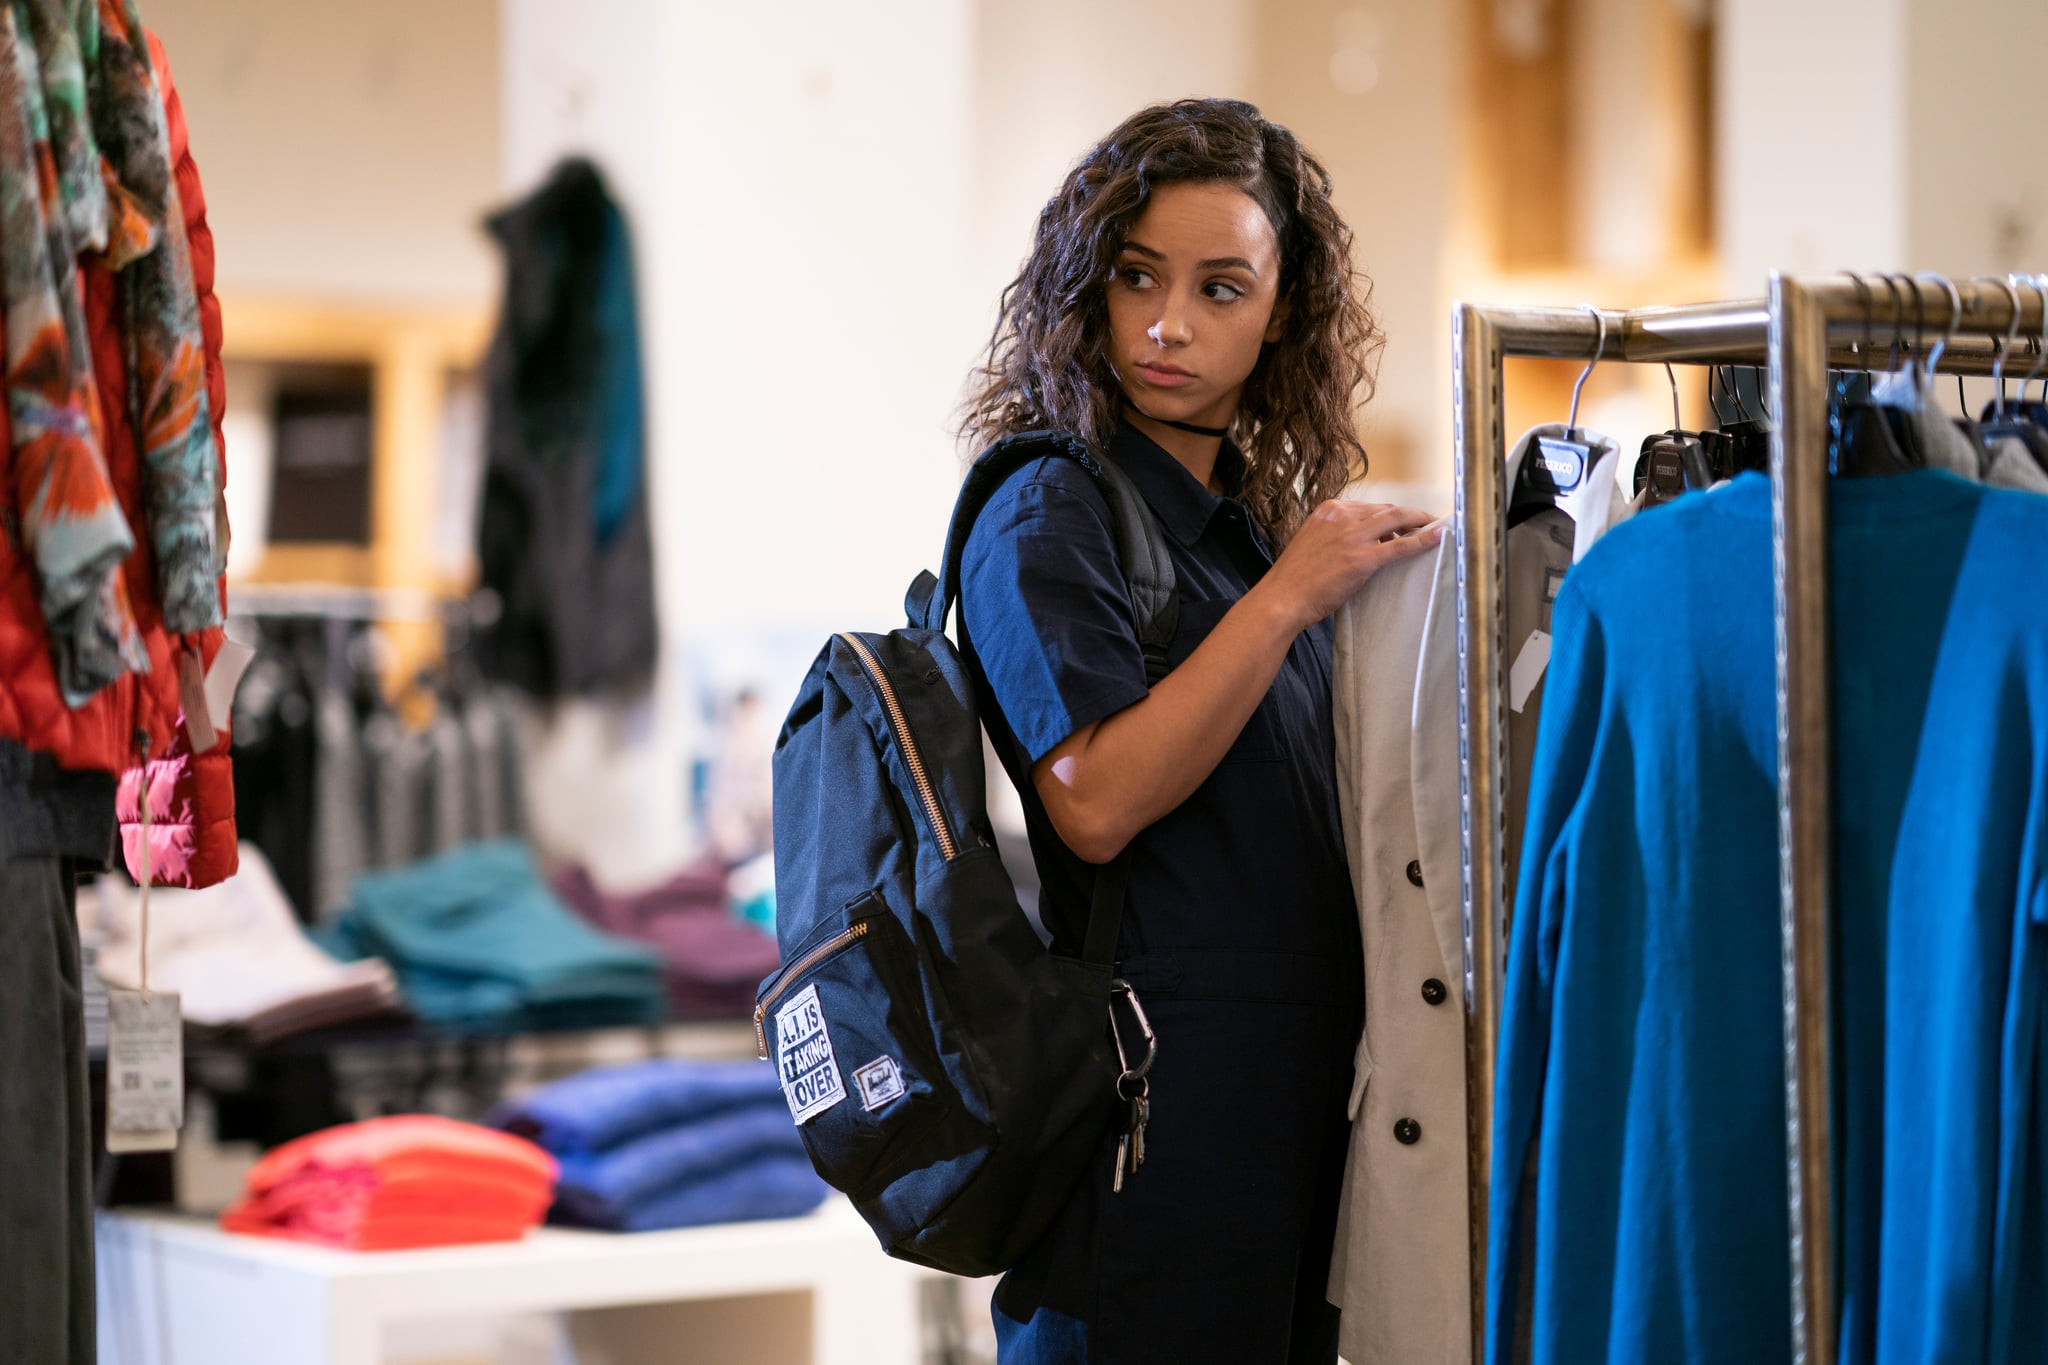 TRINKETS, Kiana Madeira in 'Mirrors', (Season 1, Episode 101, aired June 14, 2019), ph: Allyson Riggs / Netflix / Courtesy Everett Collection